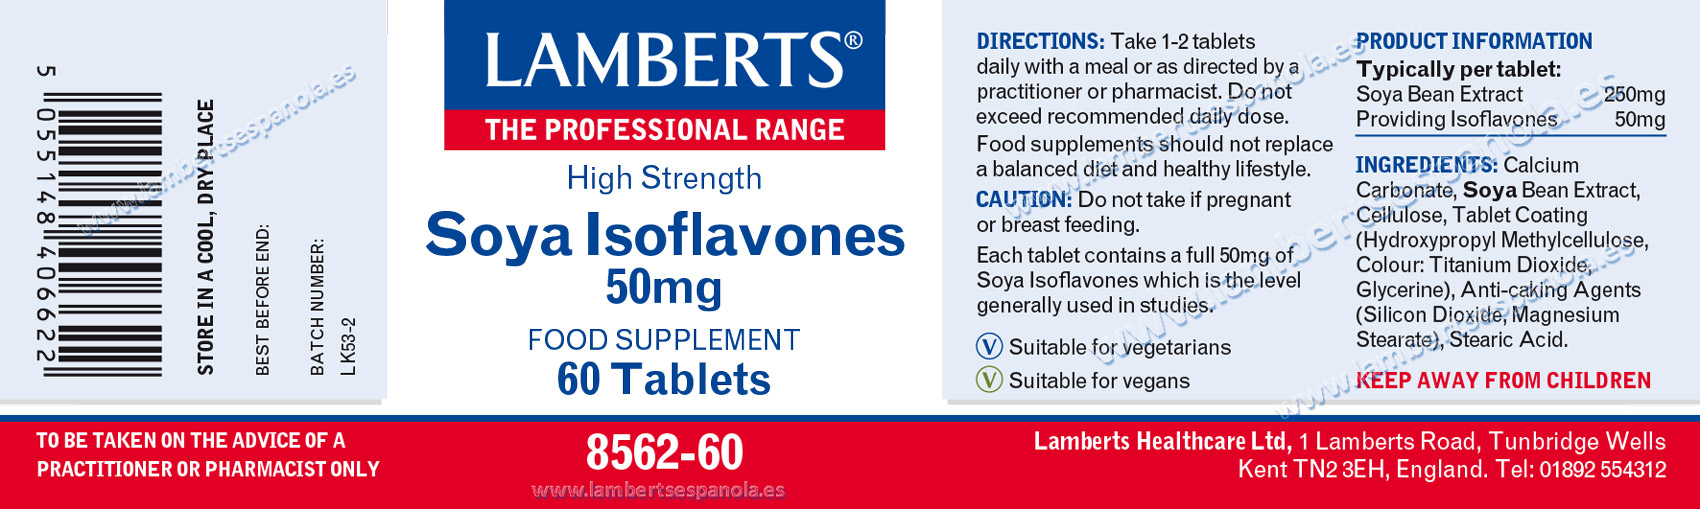 Lamberts Soy ISoflavones label with its indications and properties